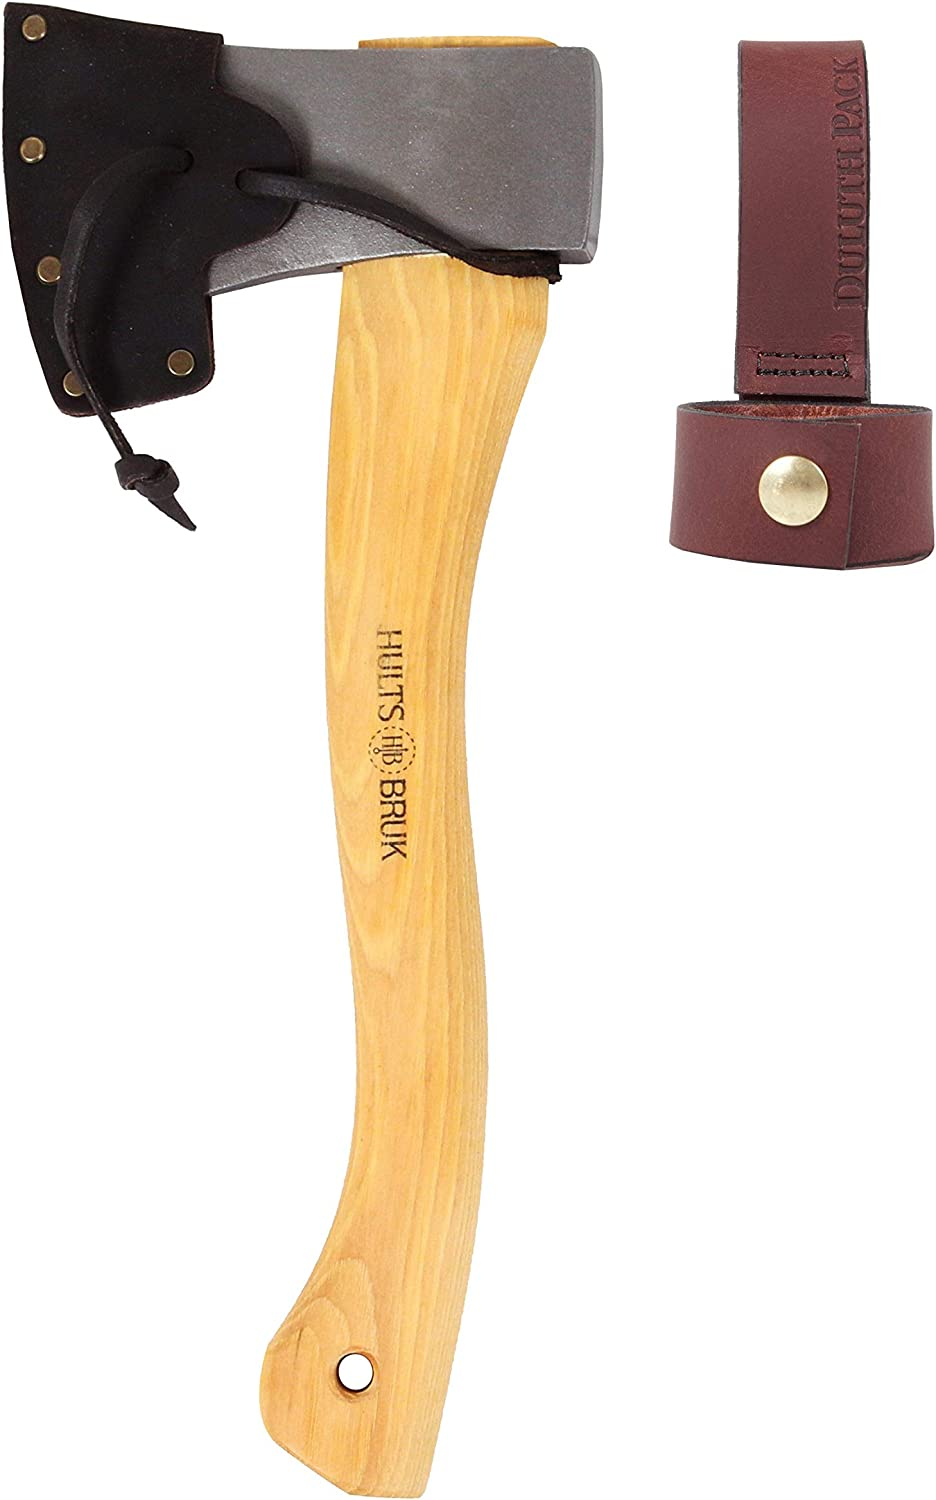 Hults Bruk Tarnaby 15 Inch Hatchet with Sheath and Duluth Pack Axe Holder Bundle